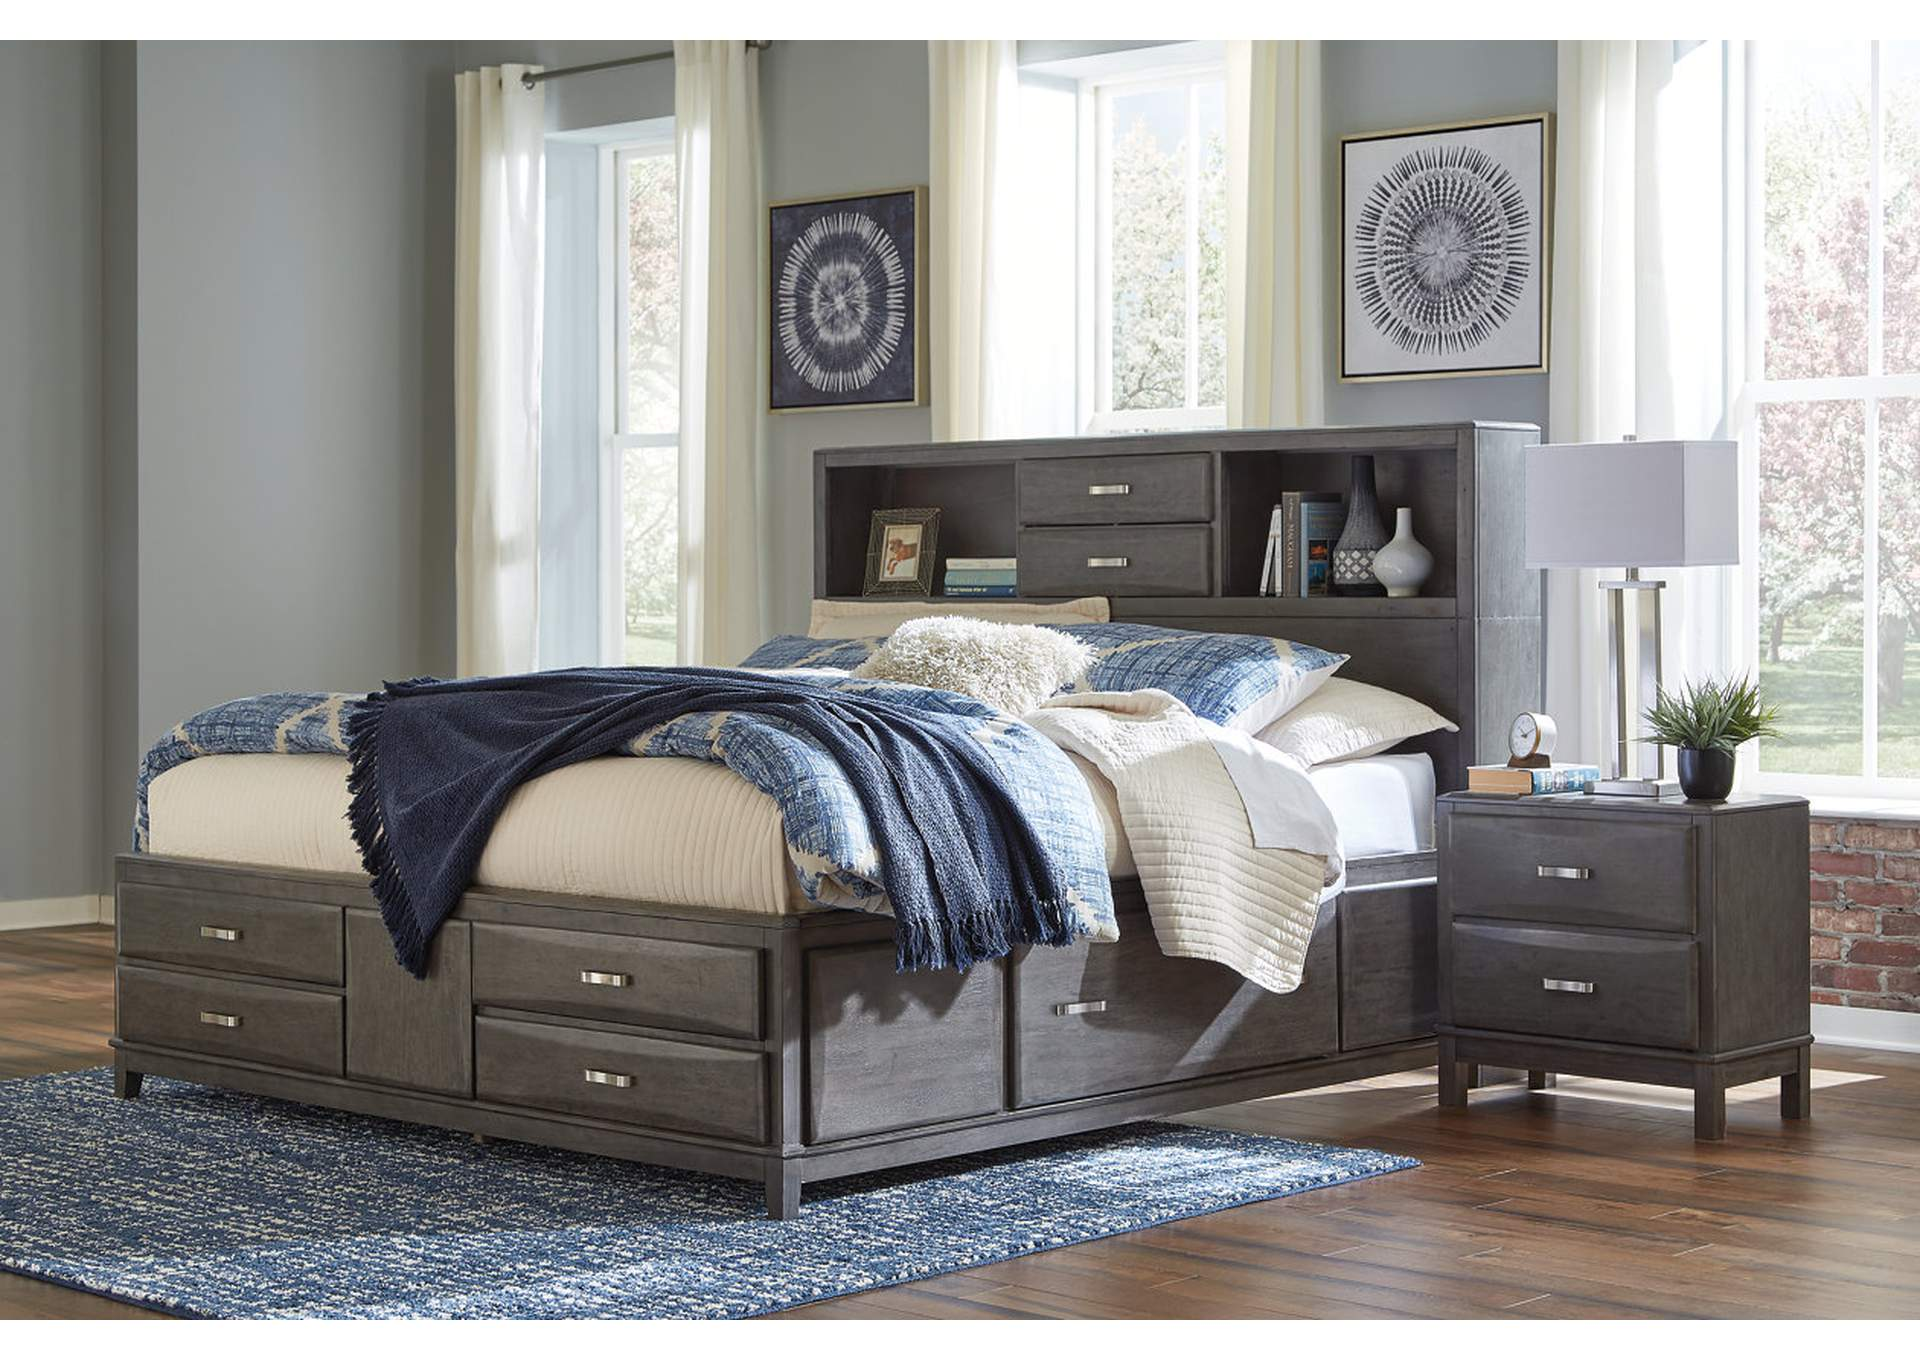 Caitbrook Queen Storage Bed,Signature Design By Ashley